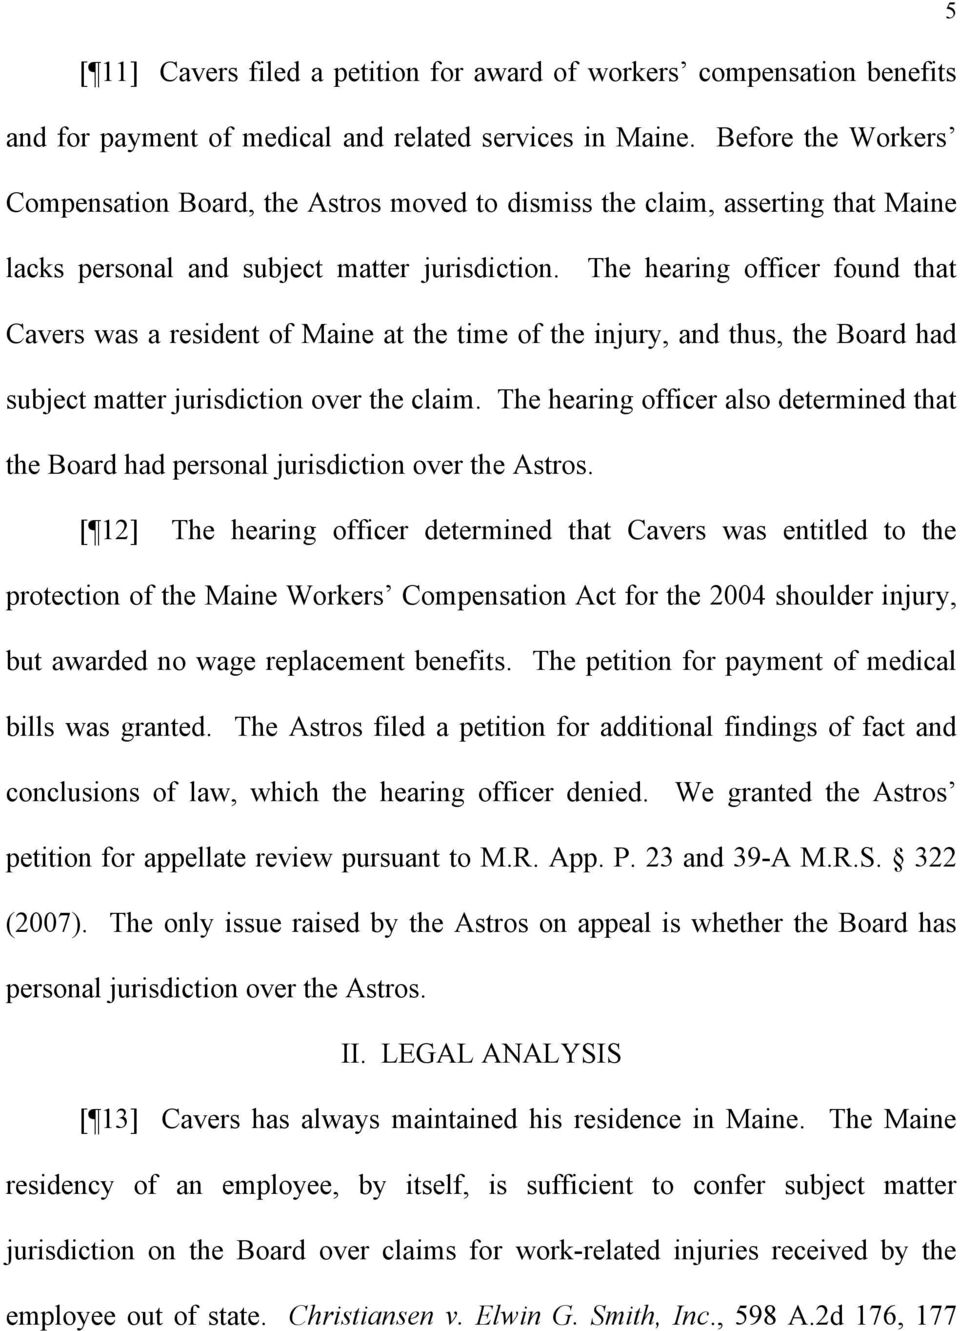 The hearing officer found that Cavers was a resident of Maine at the time of the injury, and thus, the Board had subject matter jurisdiction over the claim.